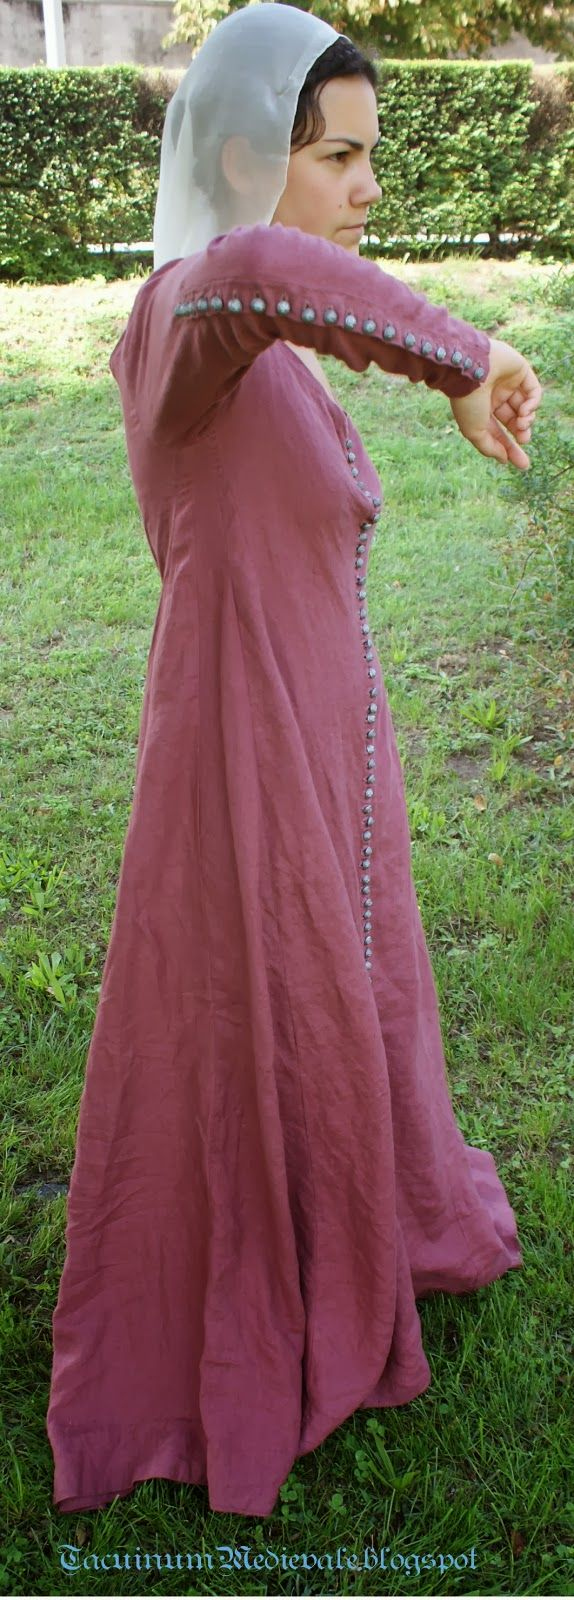 Tacuinum Medievale - blog w/lots of images of buttons all the way down the front (and/or up the whole back seam of the sleeve)